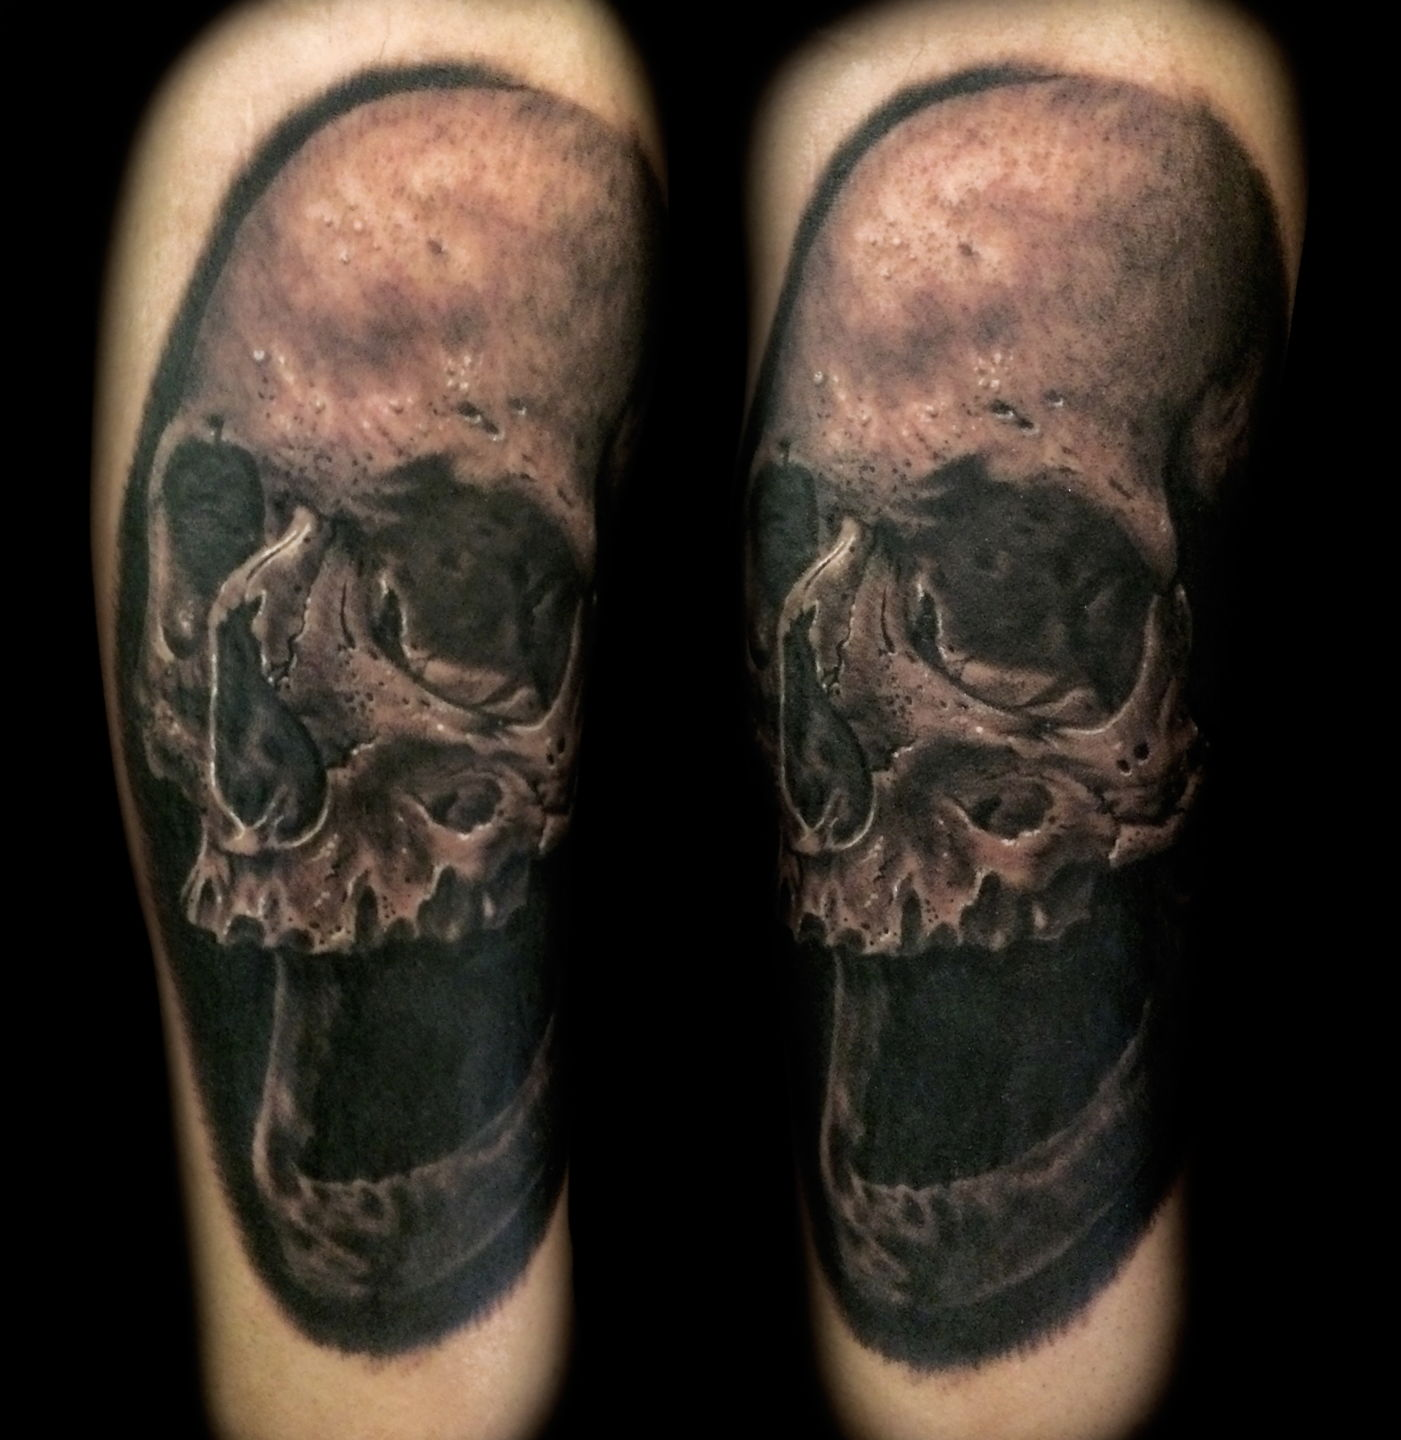 48d7907ccf9b3 joeriley:biomech-biomechanical-color-skull-forearm-realism-realistic